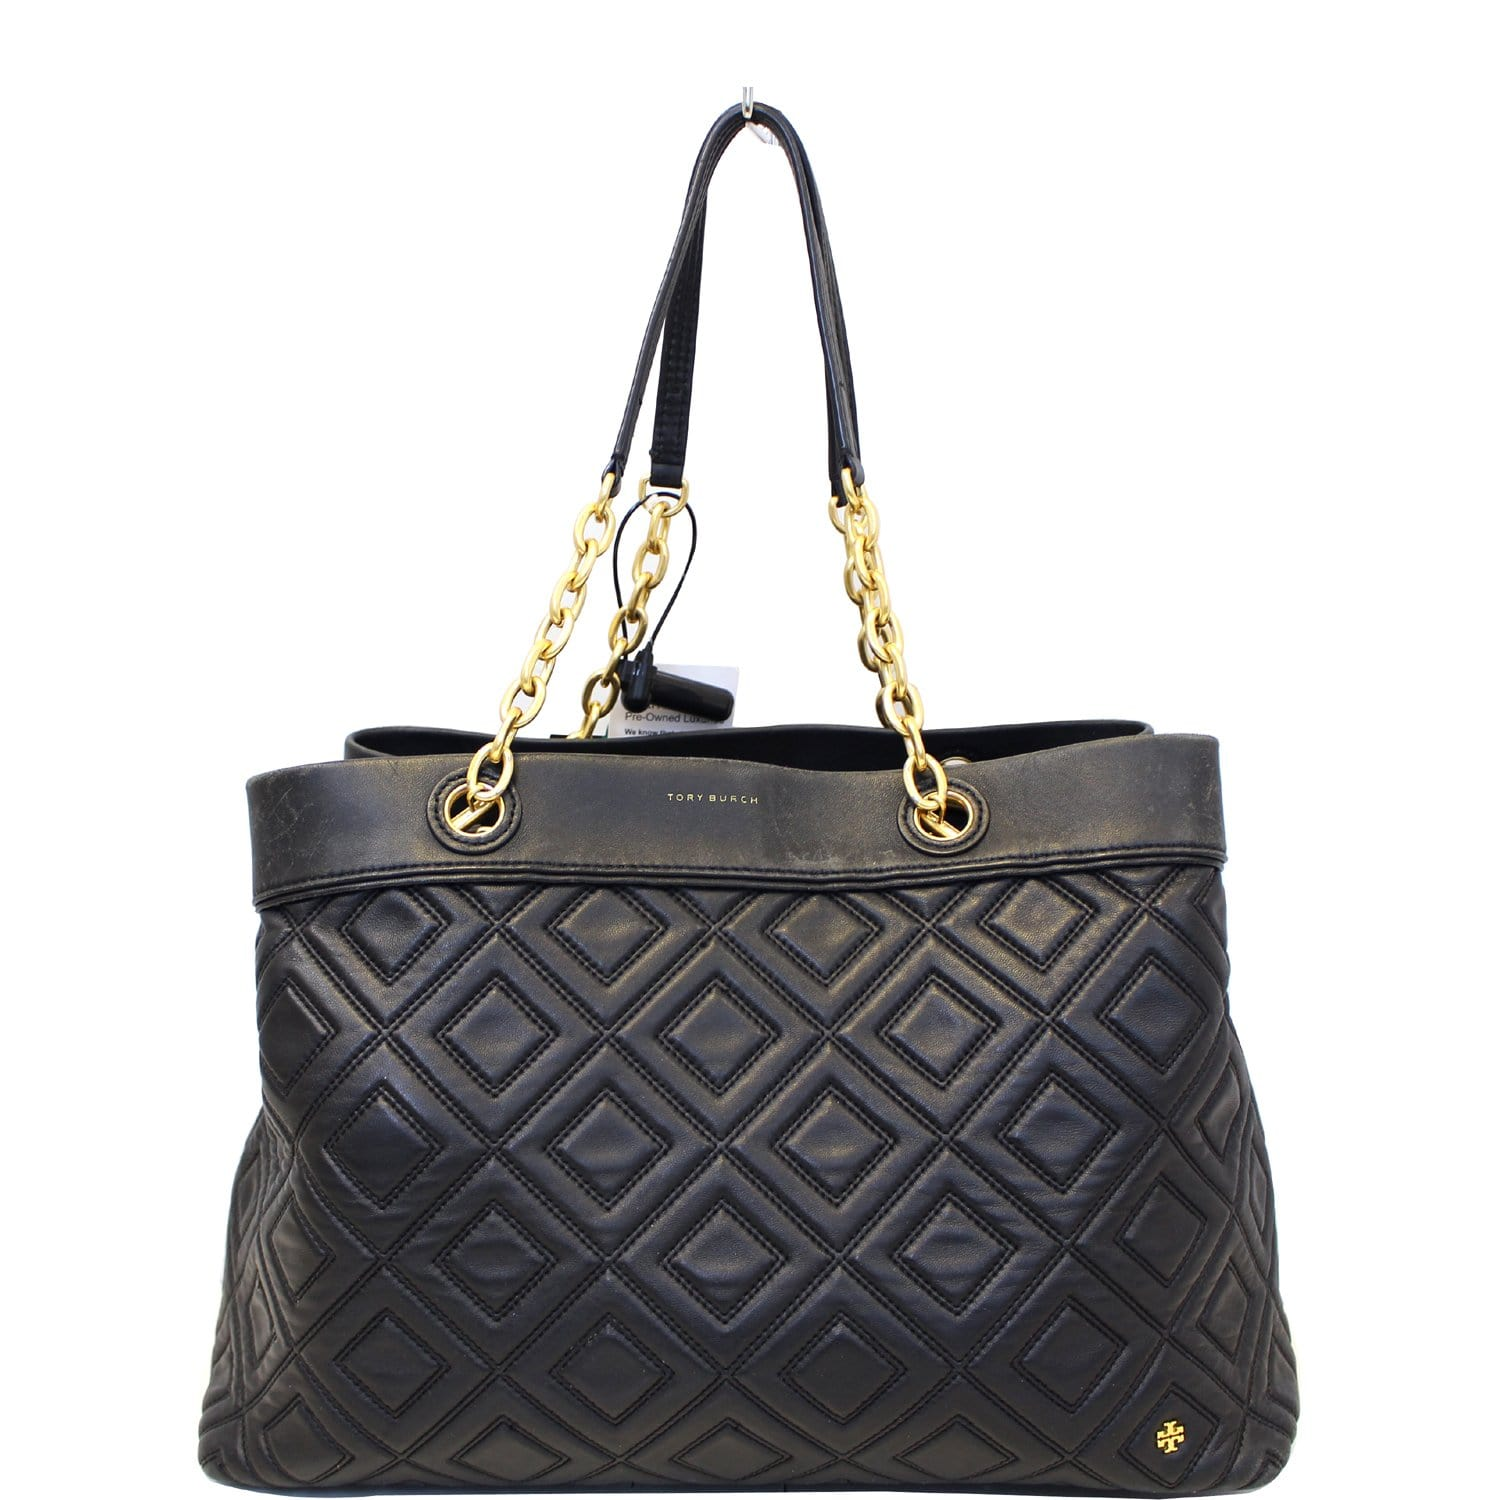 e0ca050ccc0 TORY BURCH Large Fleming Black Leather Tote Bag-US